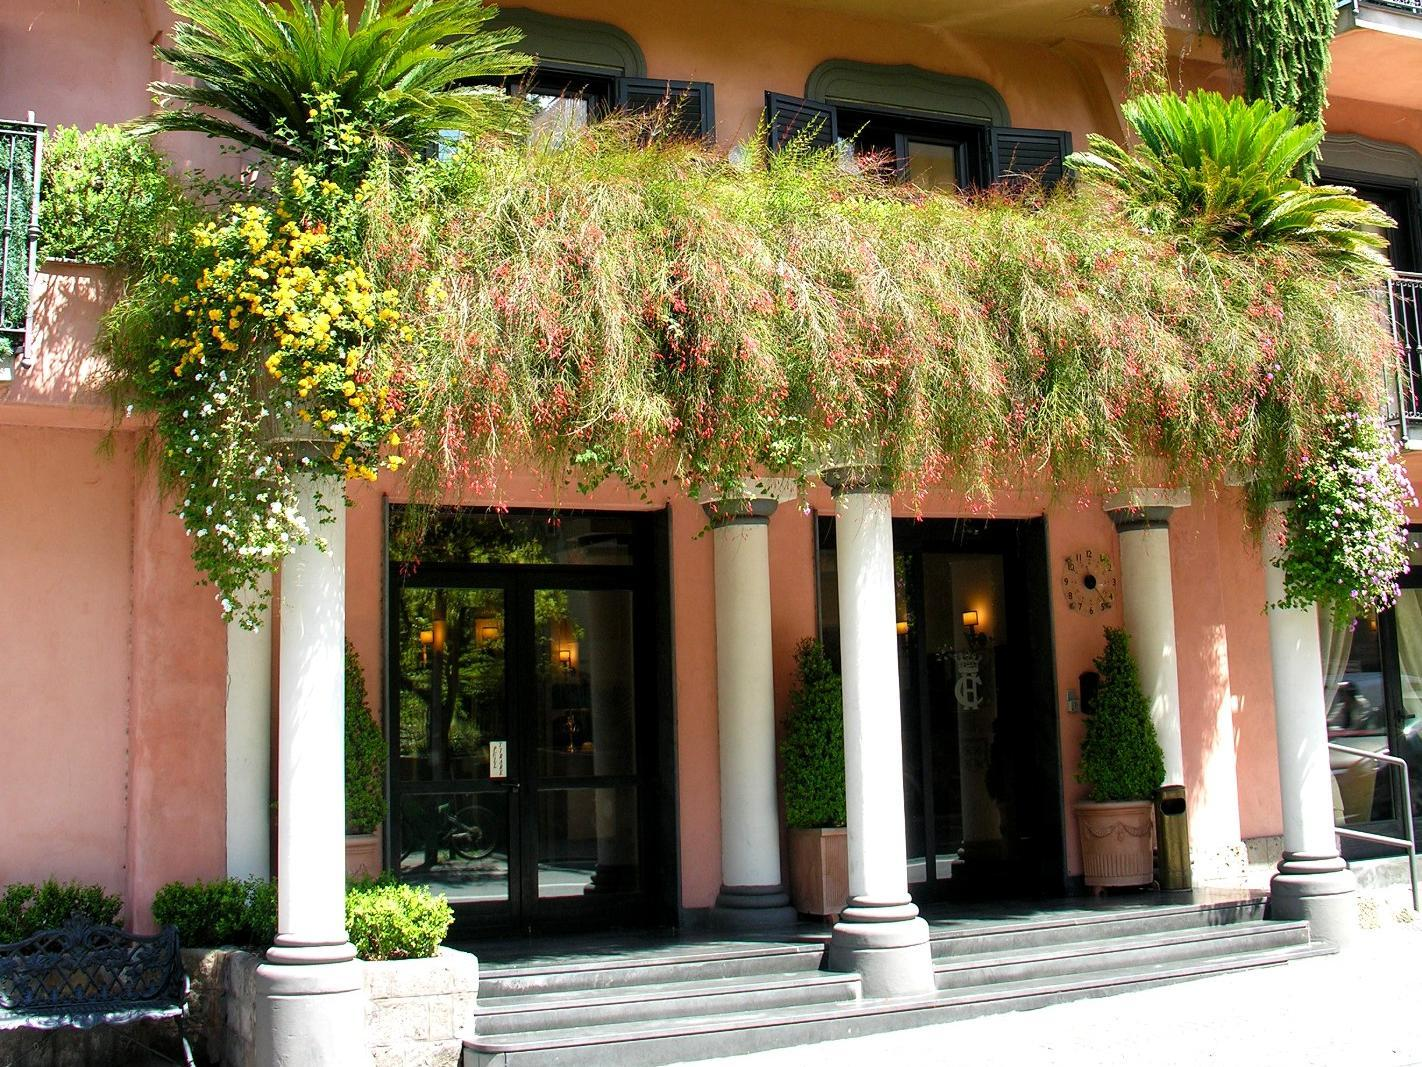 Hotel Central - Sorrento. Italy booking and map.